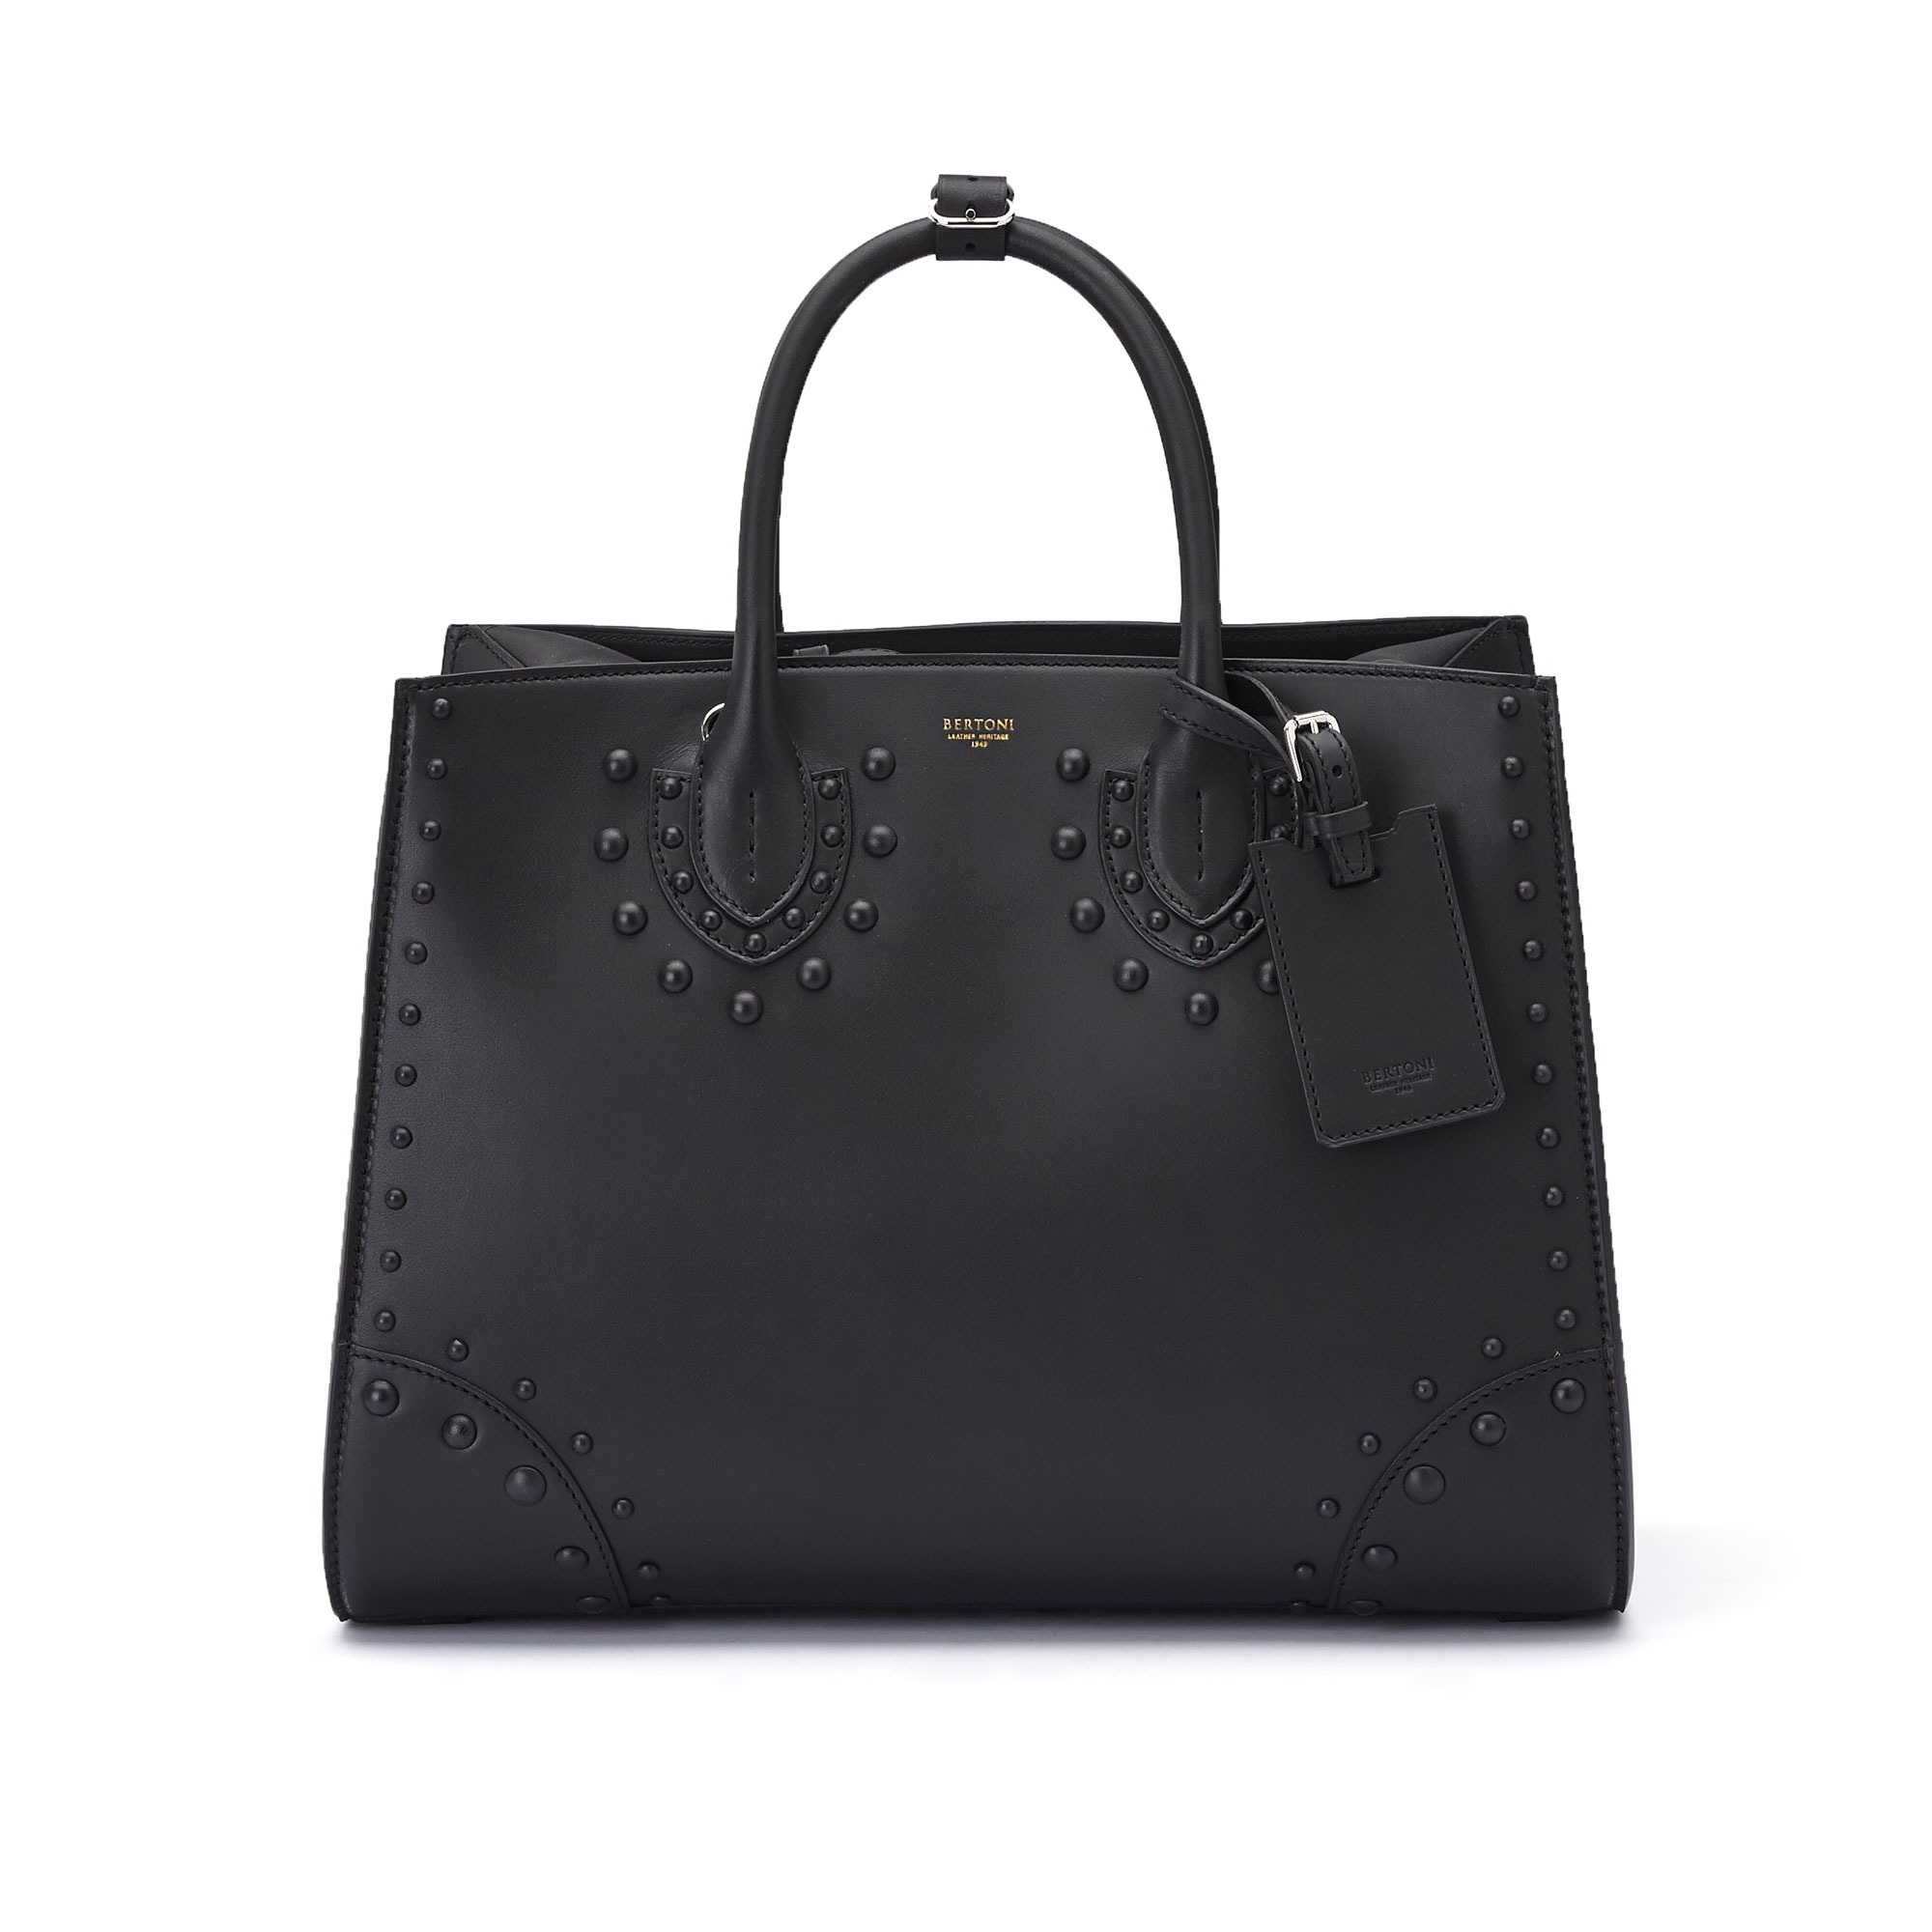 The black french calf Darcy large bag by Bertoni 1949 02